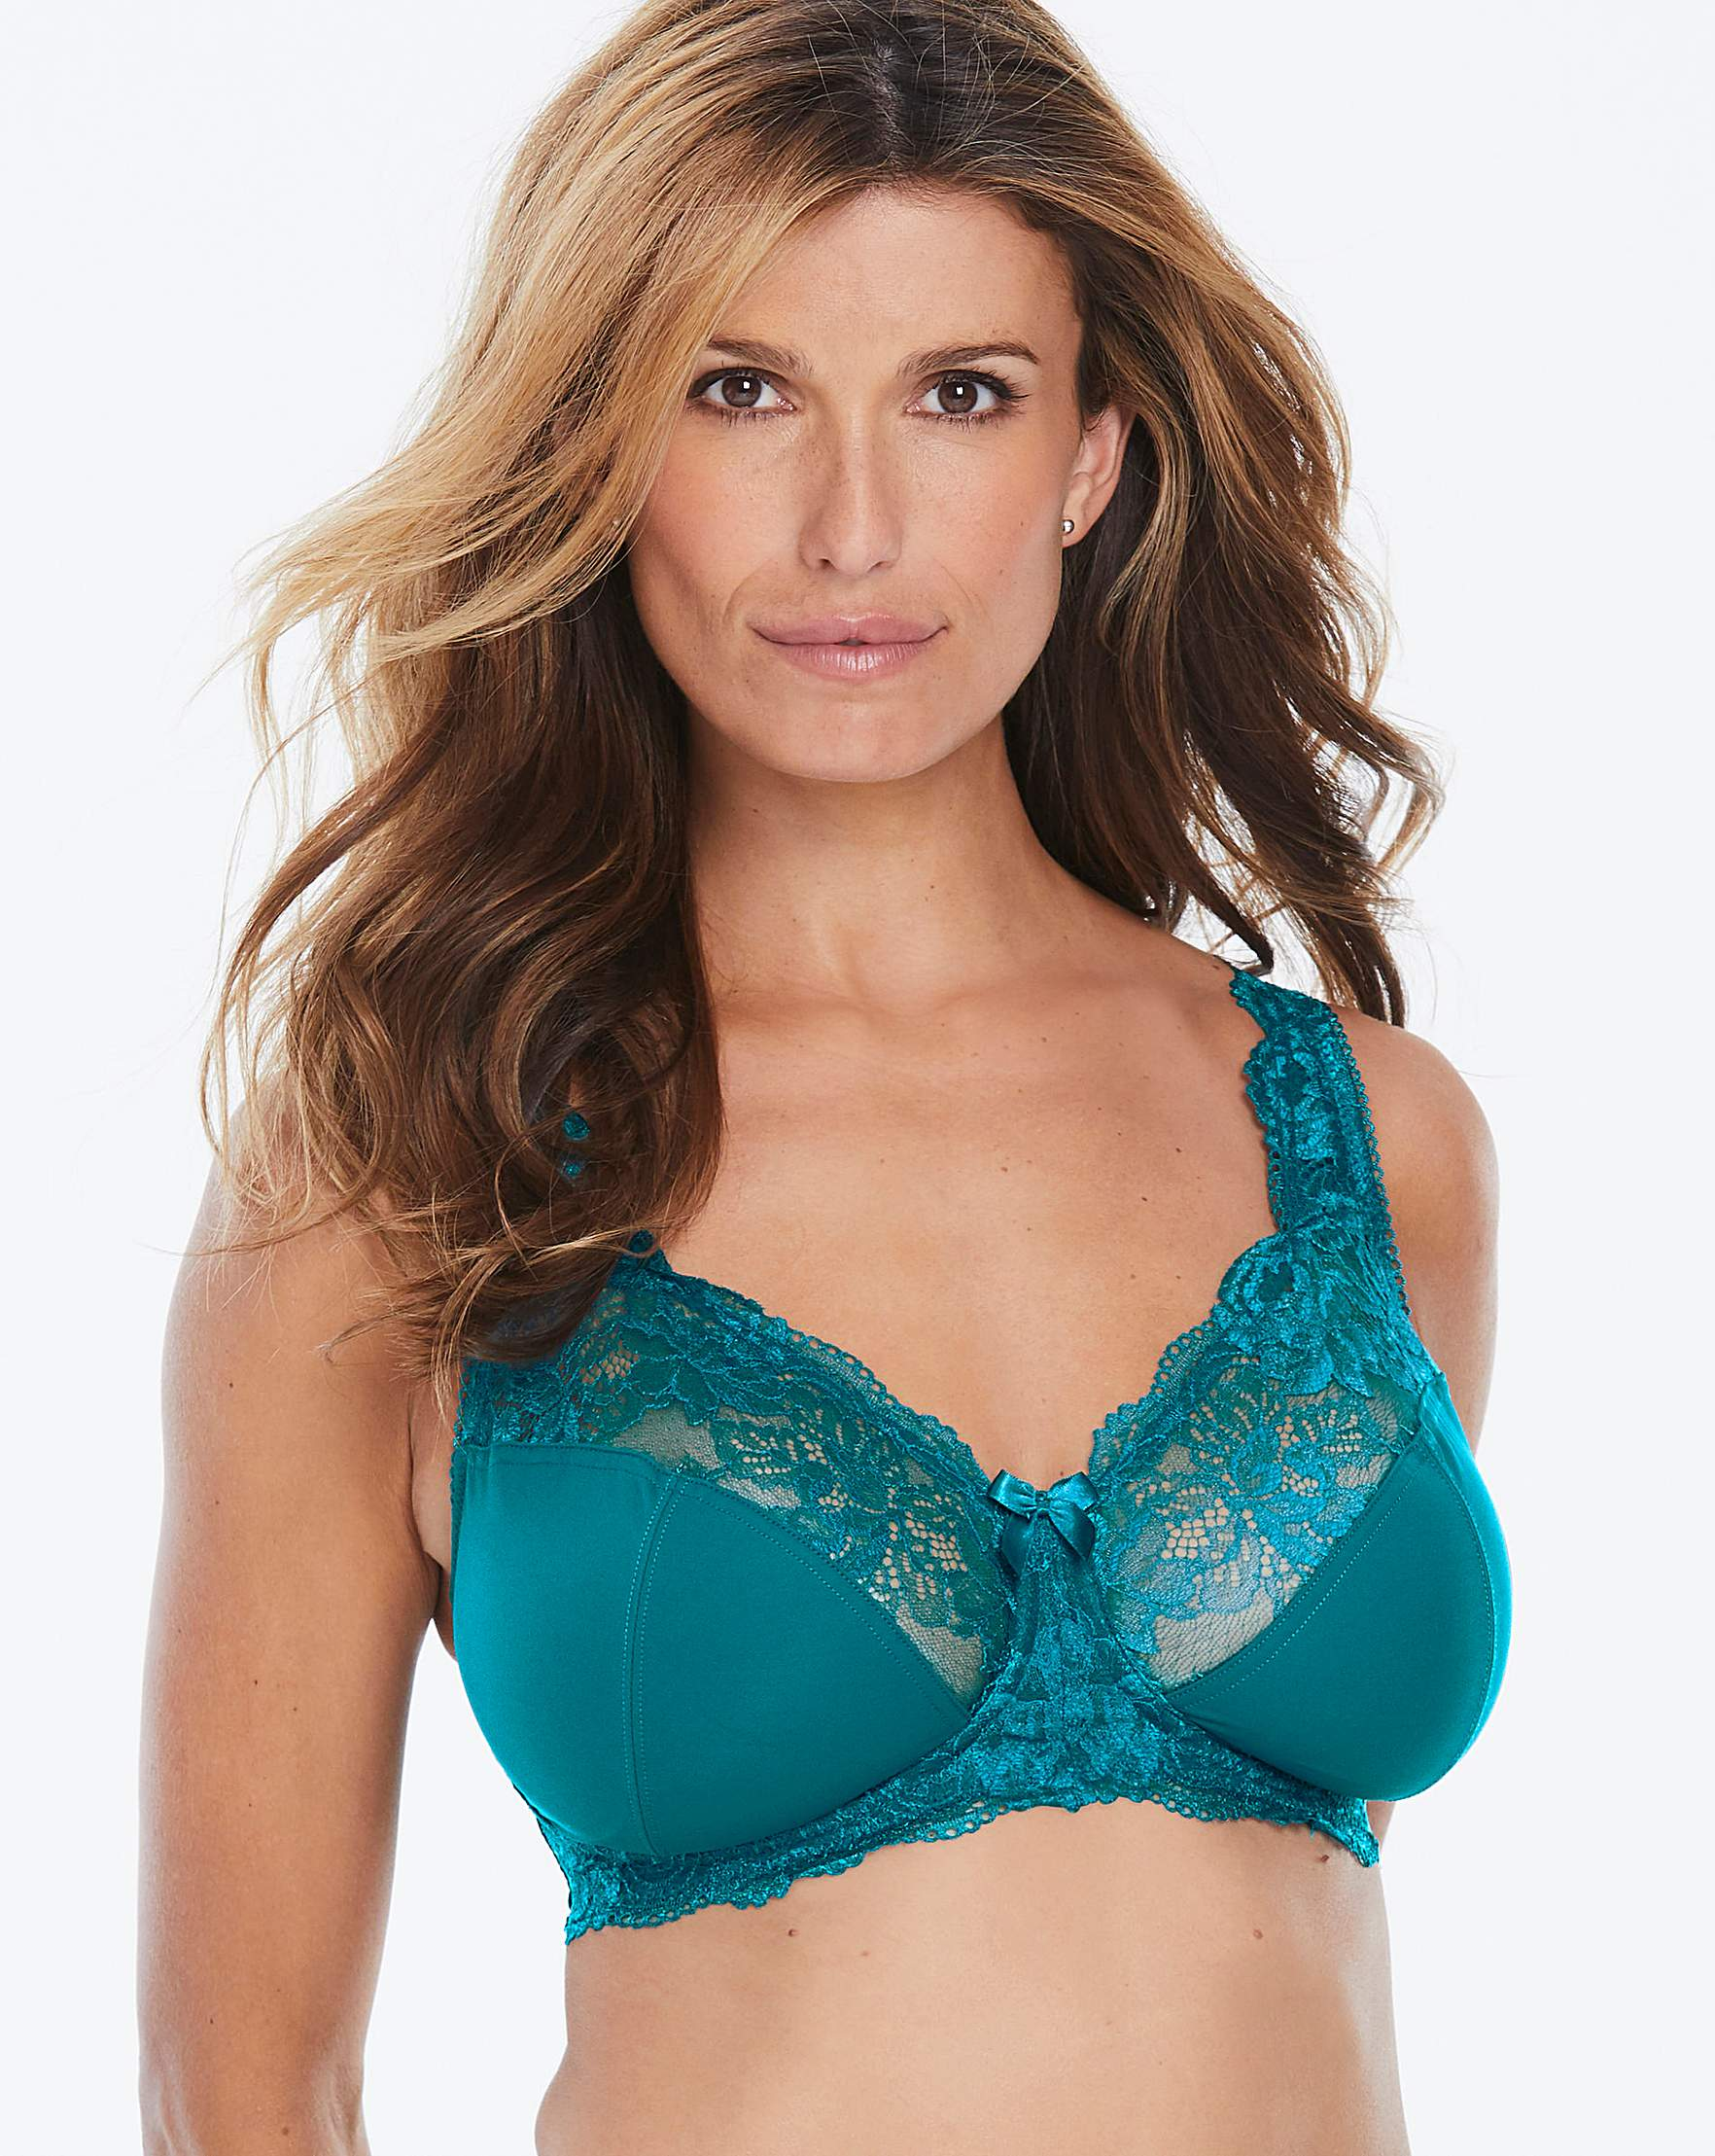 462c479a2d9 2Pack Ella Lace NonWired Teal Damson Bra